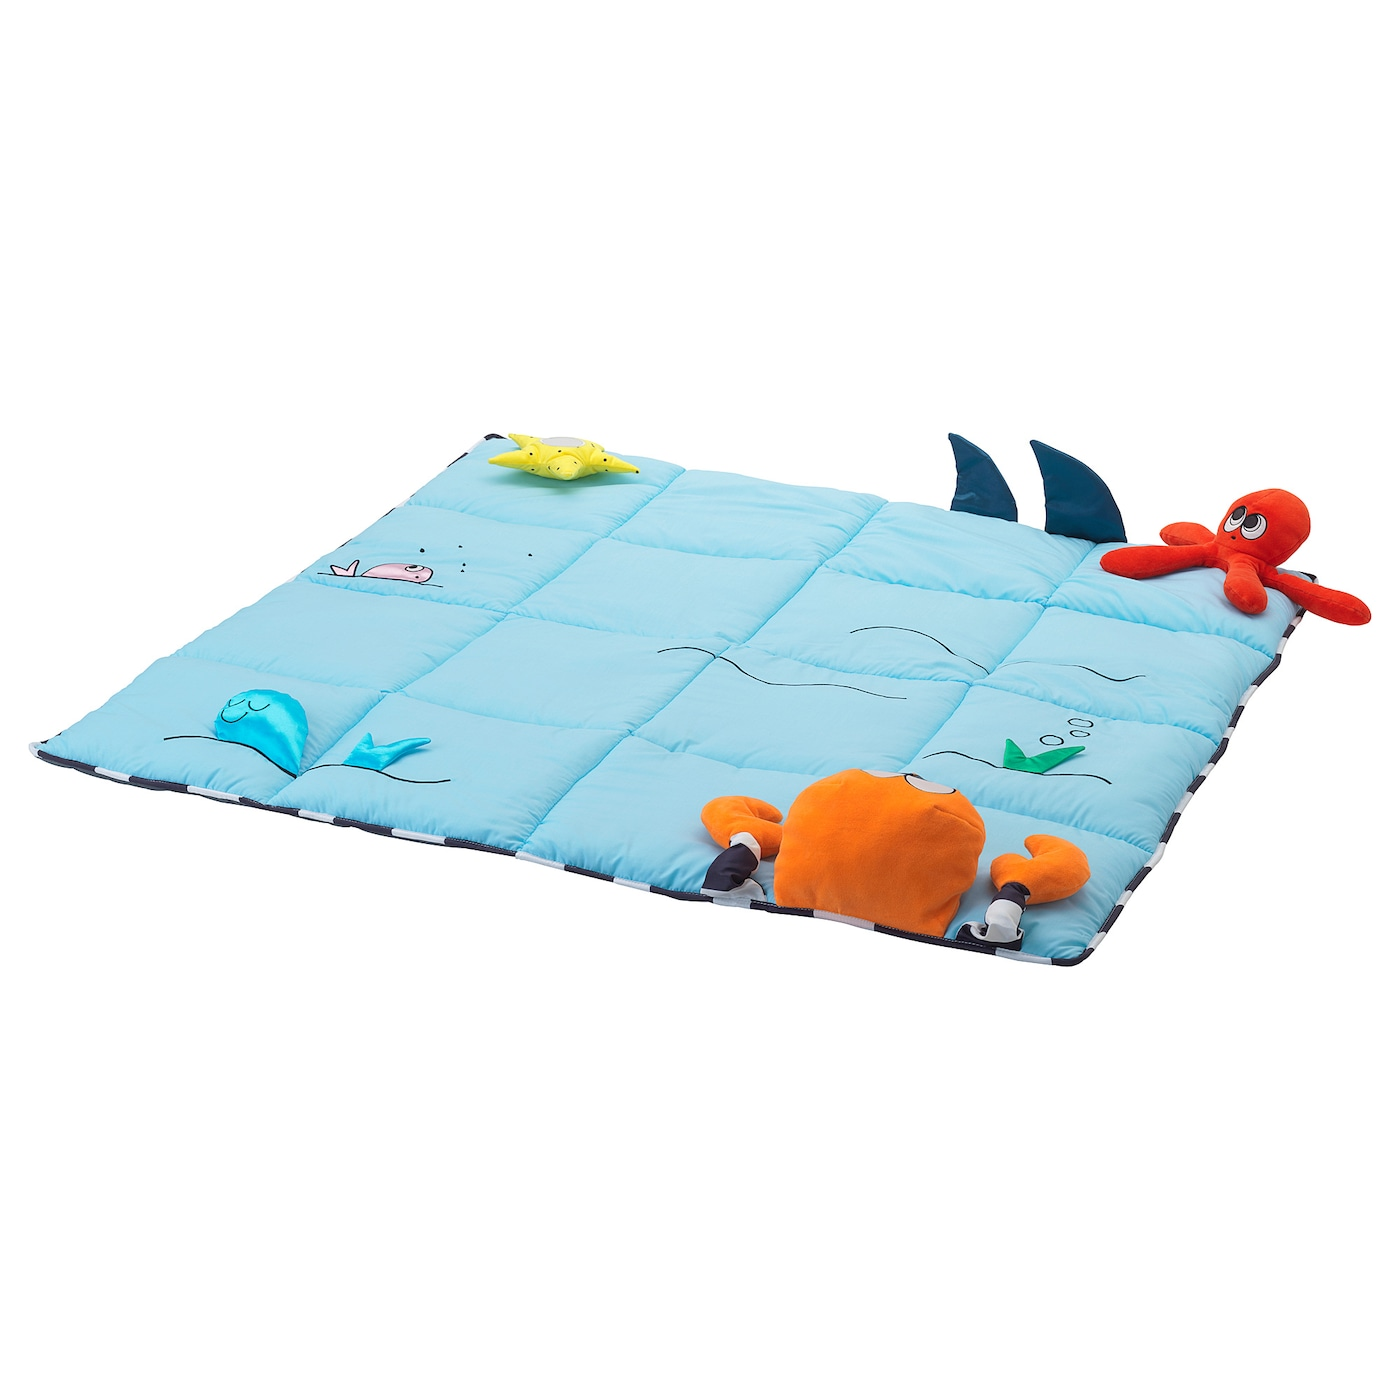 IKEA KLAPPA play mat Sharp contrasts that are easy for a baby to see.